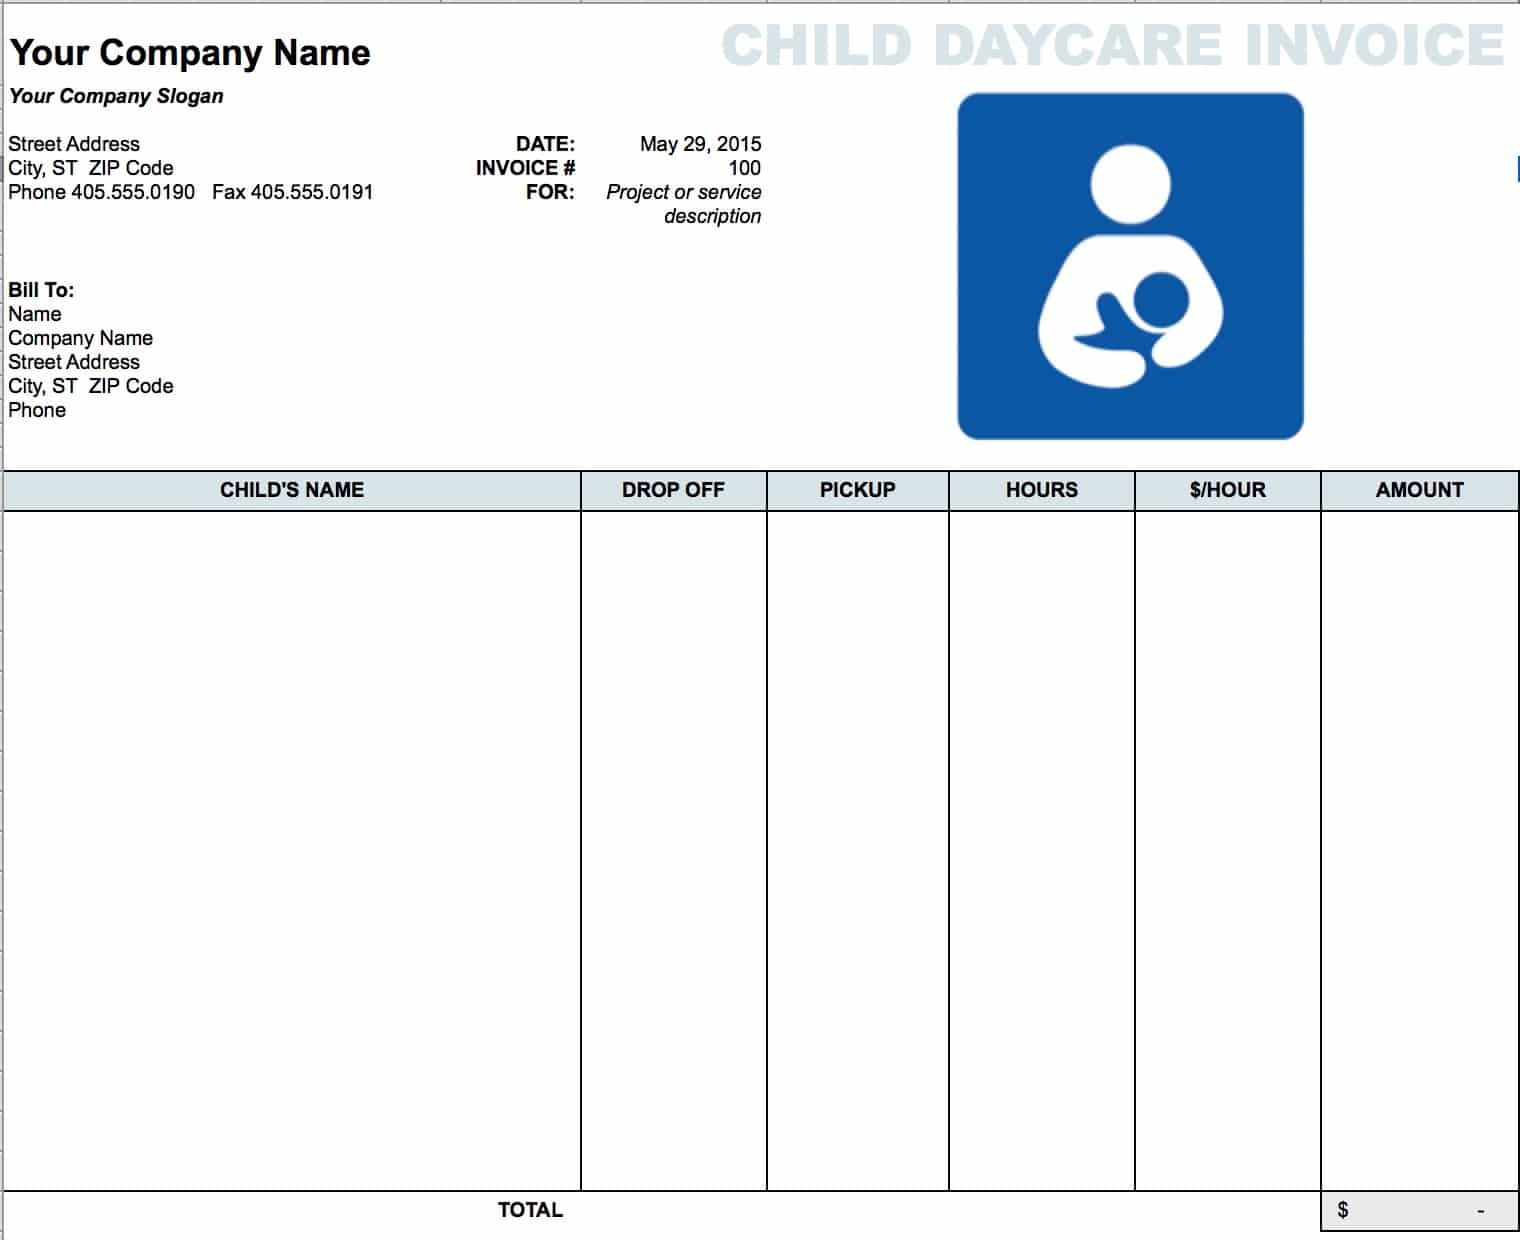 Free Daycare Child Invoice Template Excel PDF Word Doc - Invoices template free for service business